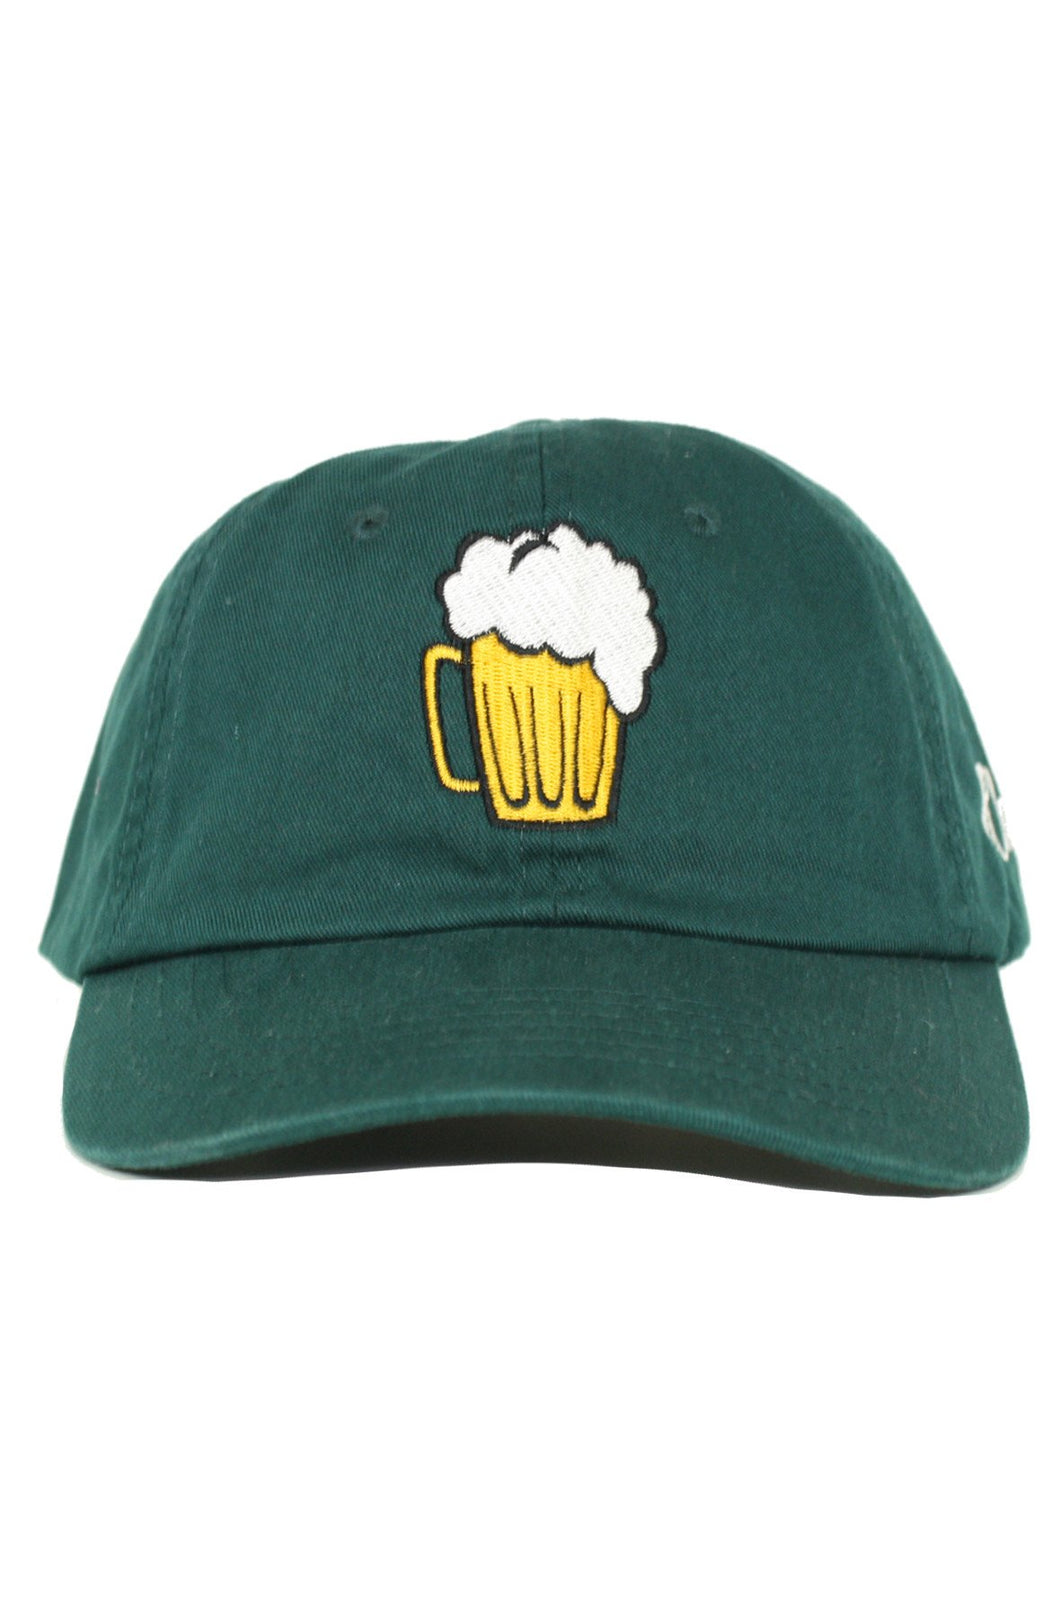 CHEERS EMERALD DAD HAT